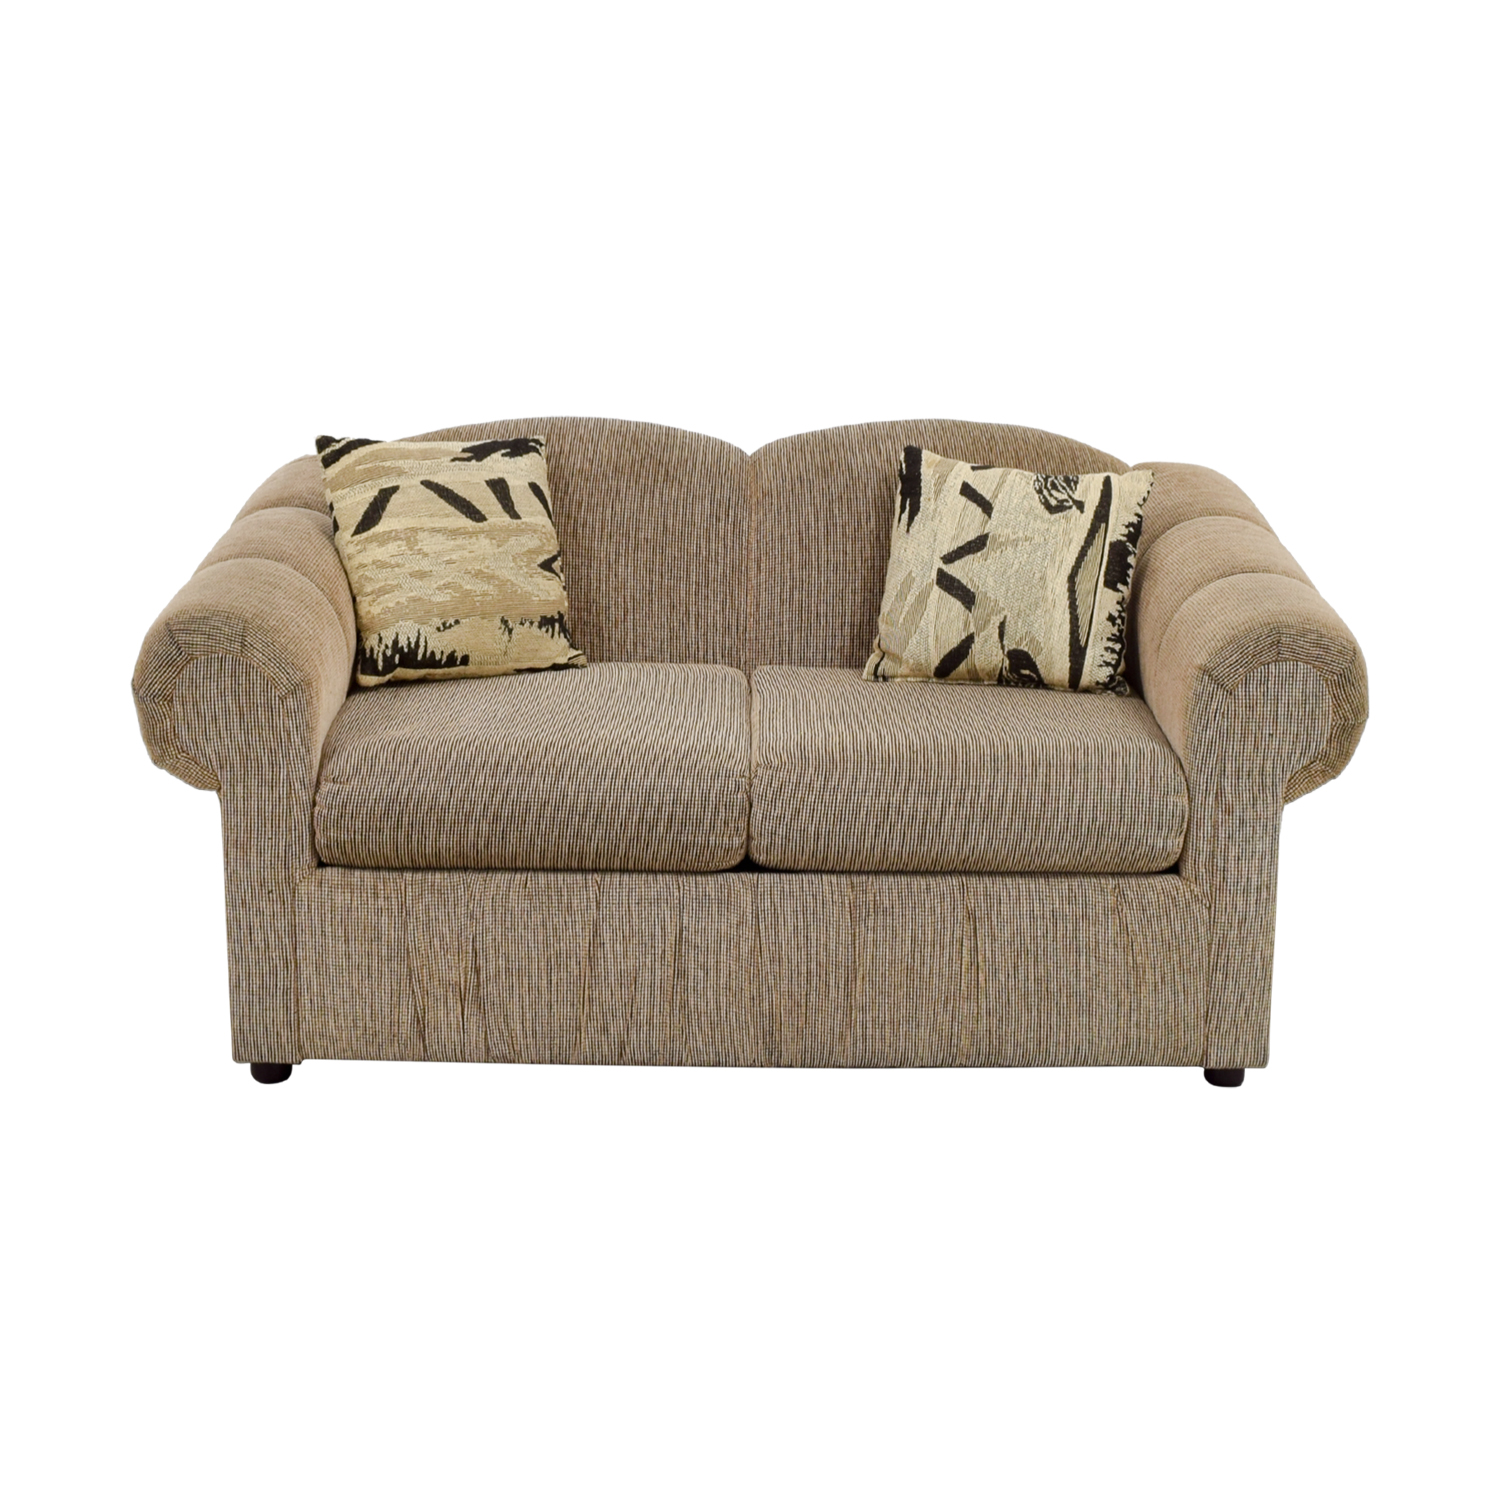 Tan Two-Cushion Love Seat dimensions